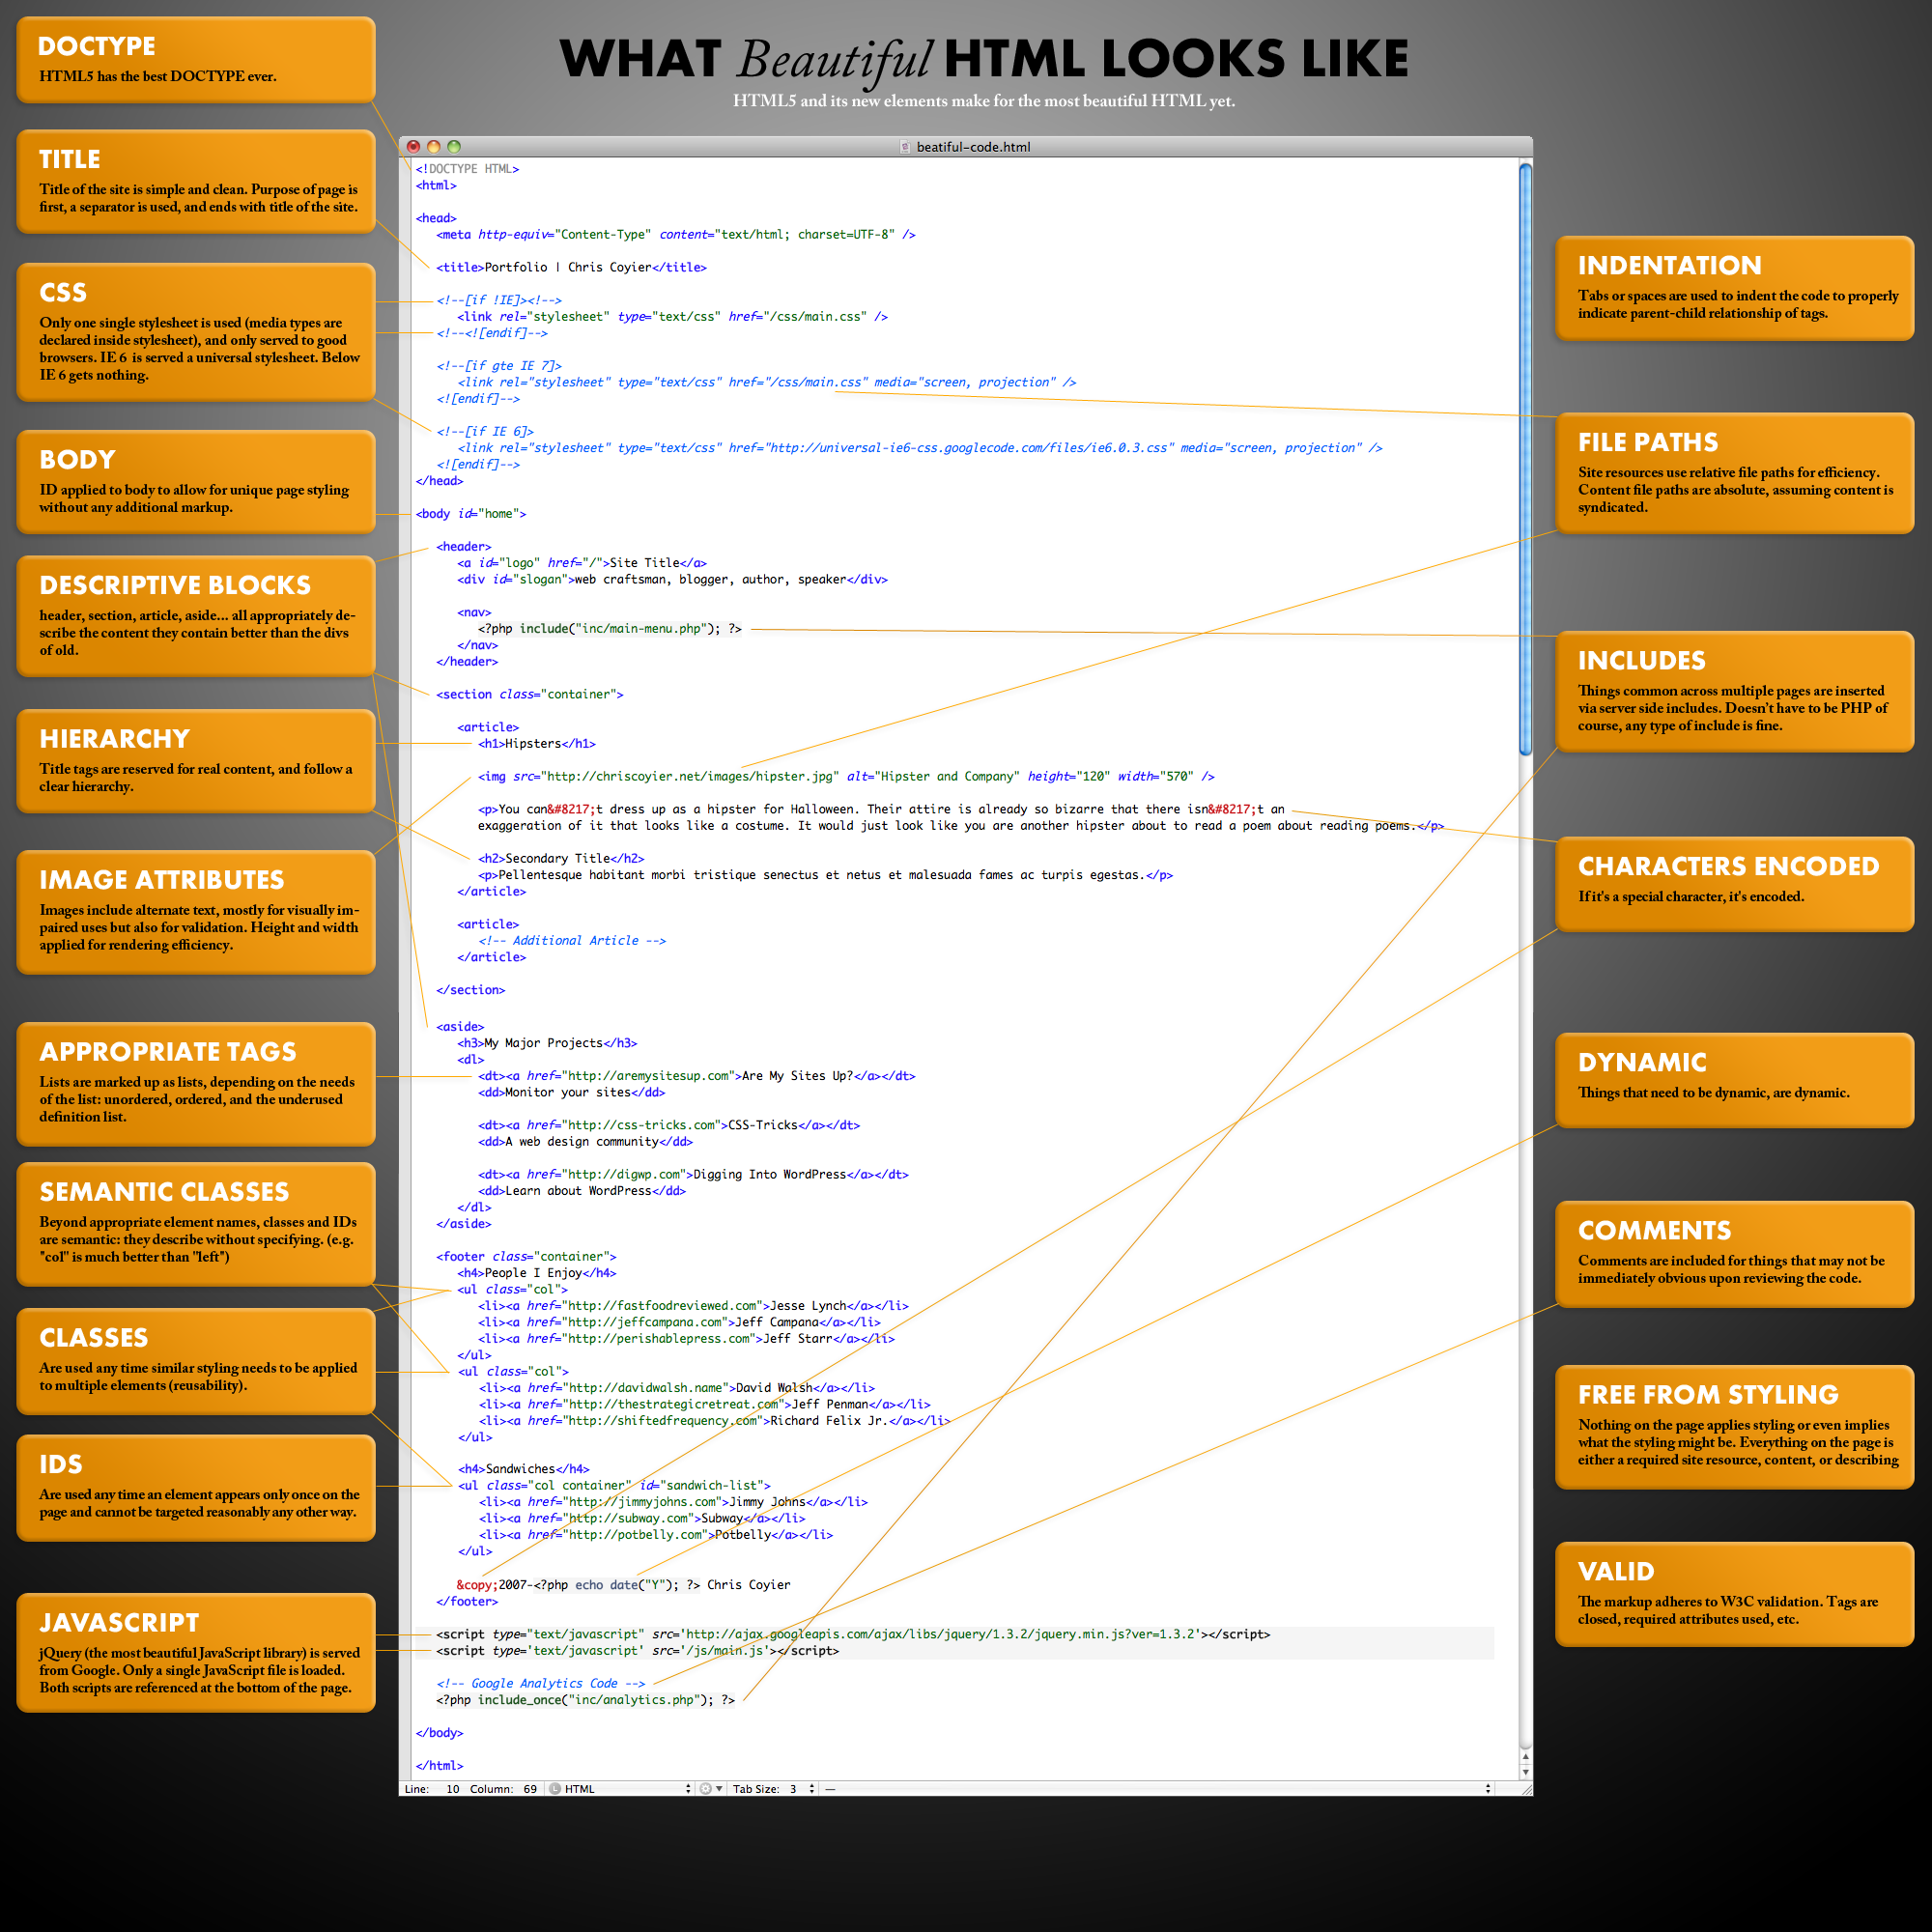 Html5 Page Structure What Beautiful Html Looks Like Html5 Web Design Tips Web Development Design Coding